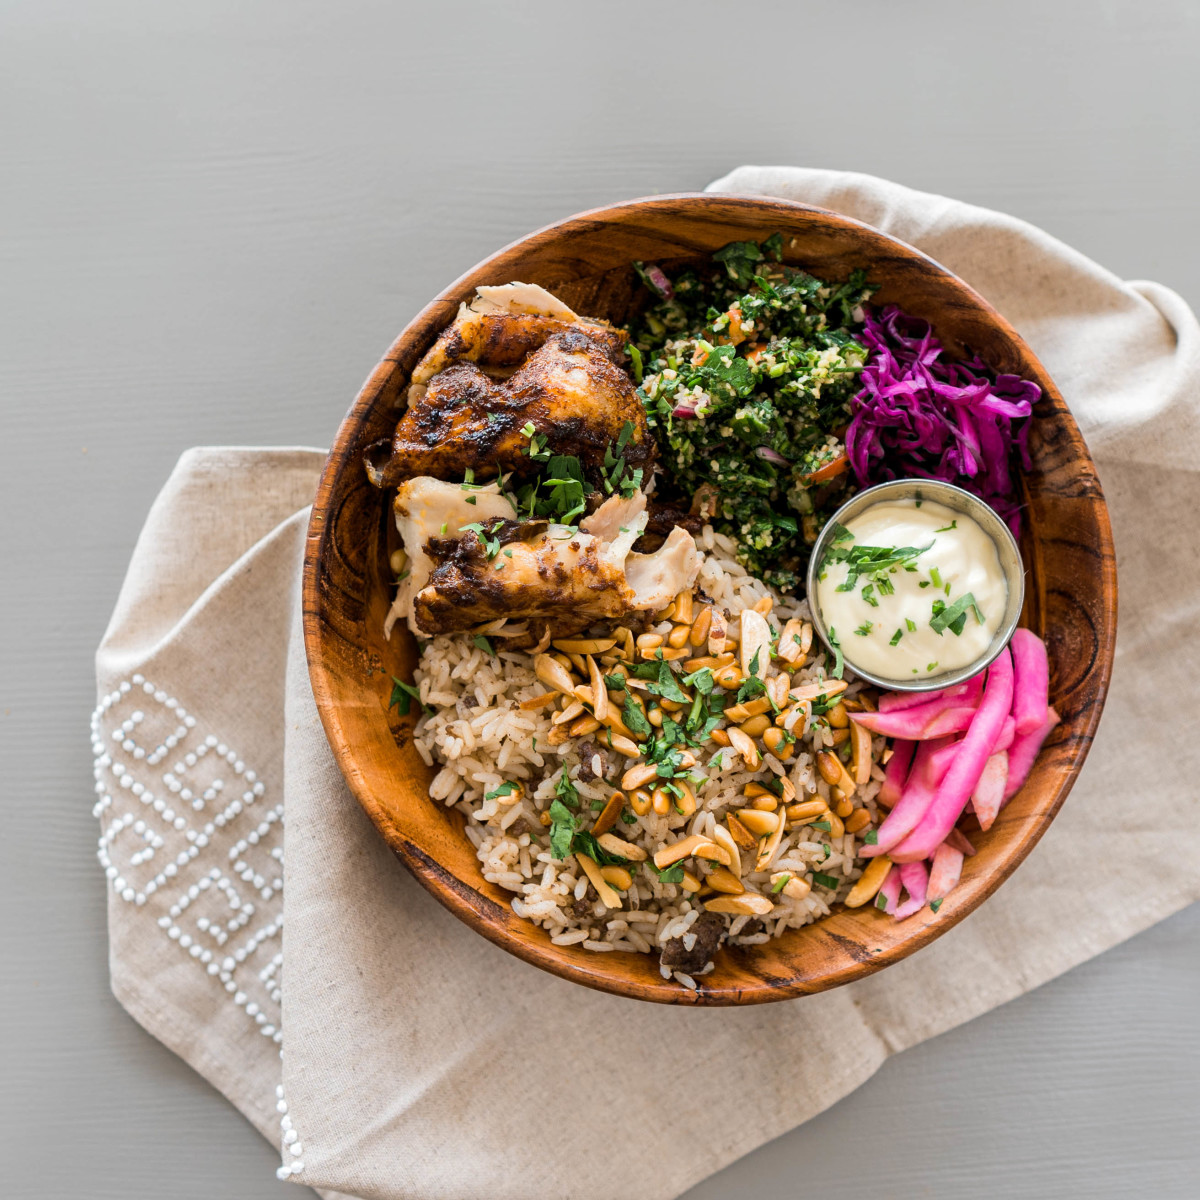 Craft Pita chicken bowl